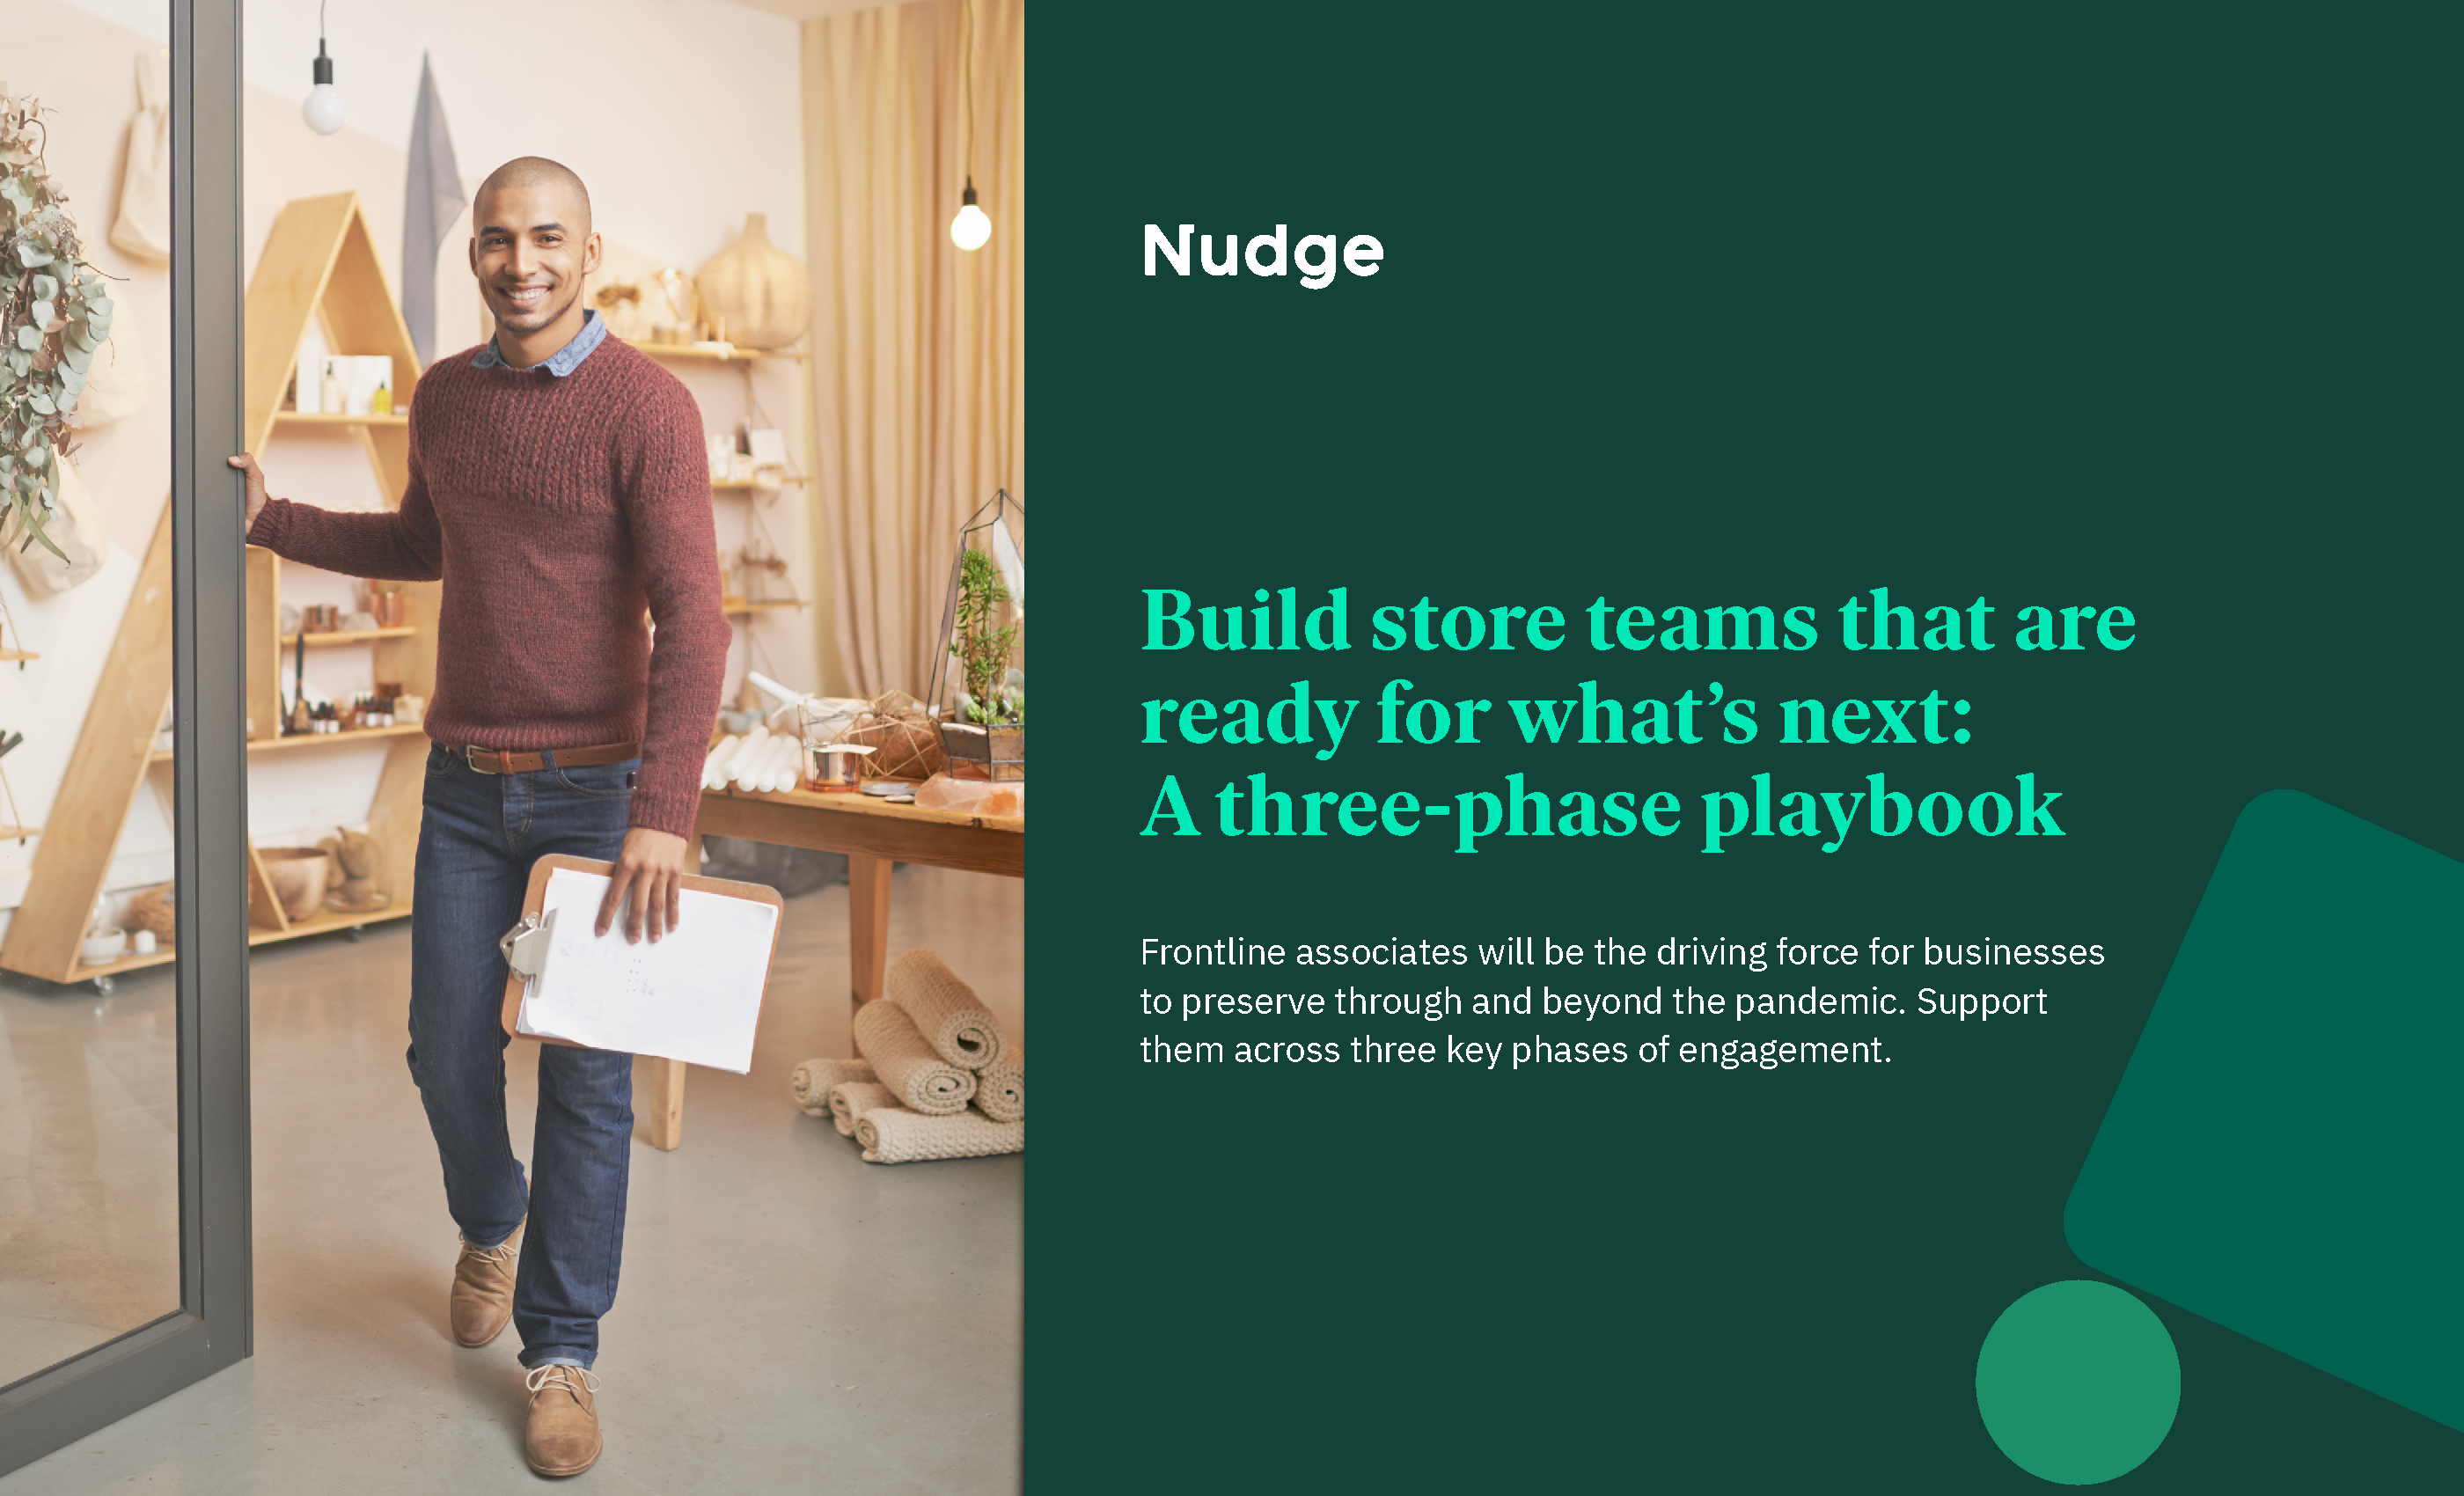 Ebook - Nudge - Build store teams for what's next